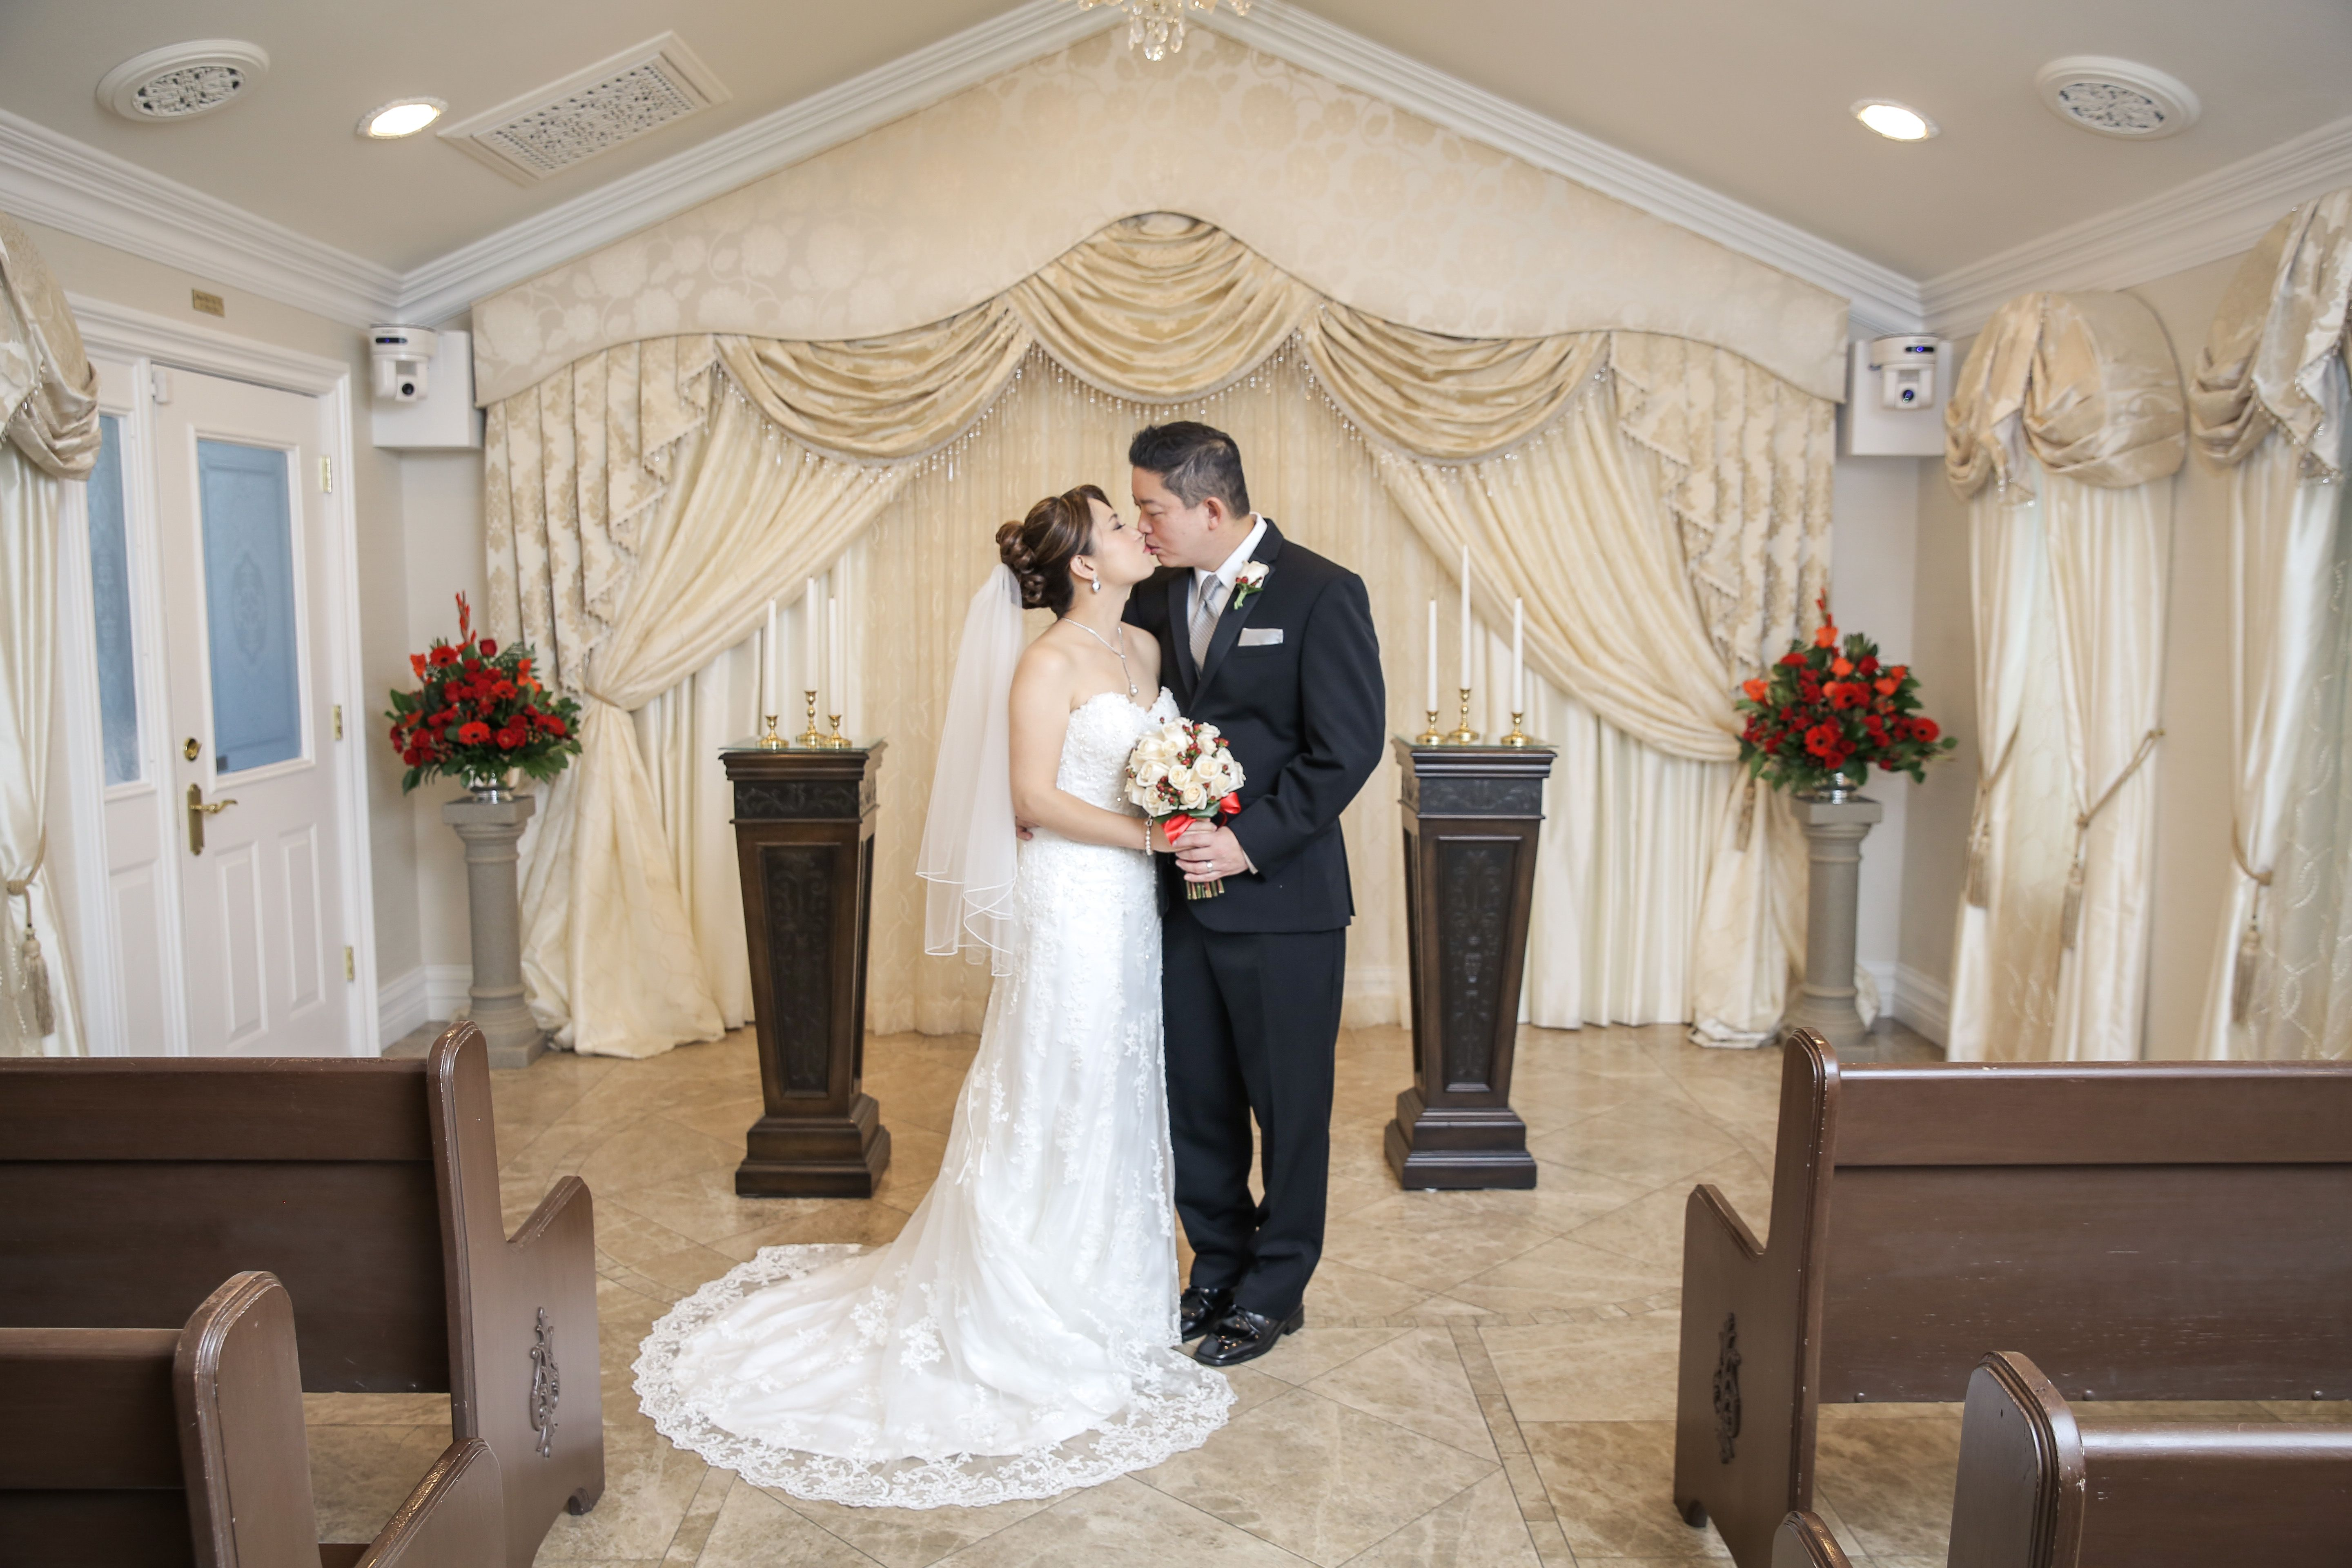 Traditional Weddings In Las Vegas Perfect Wedding Location For Destination Elopement And Legal Ceremonies Chapel Of The Flowers Offer